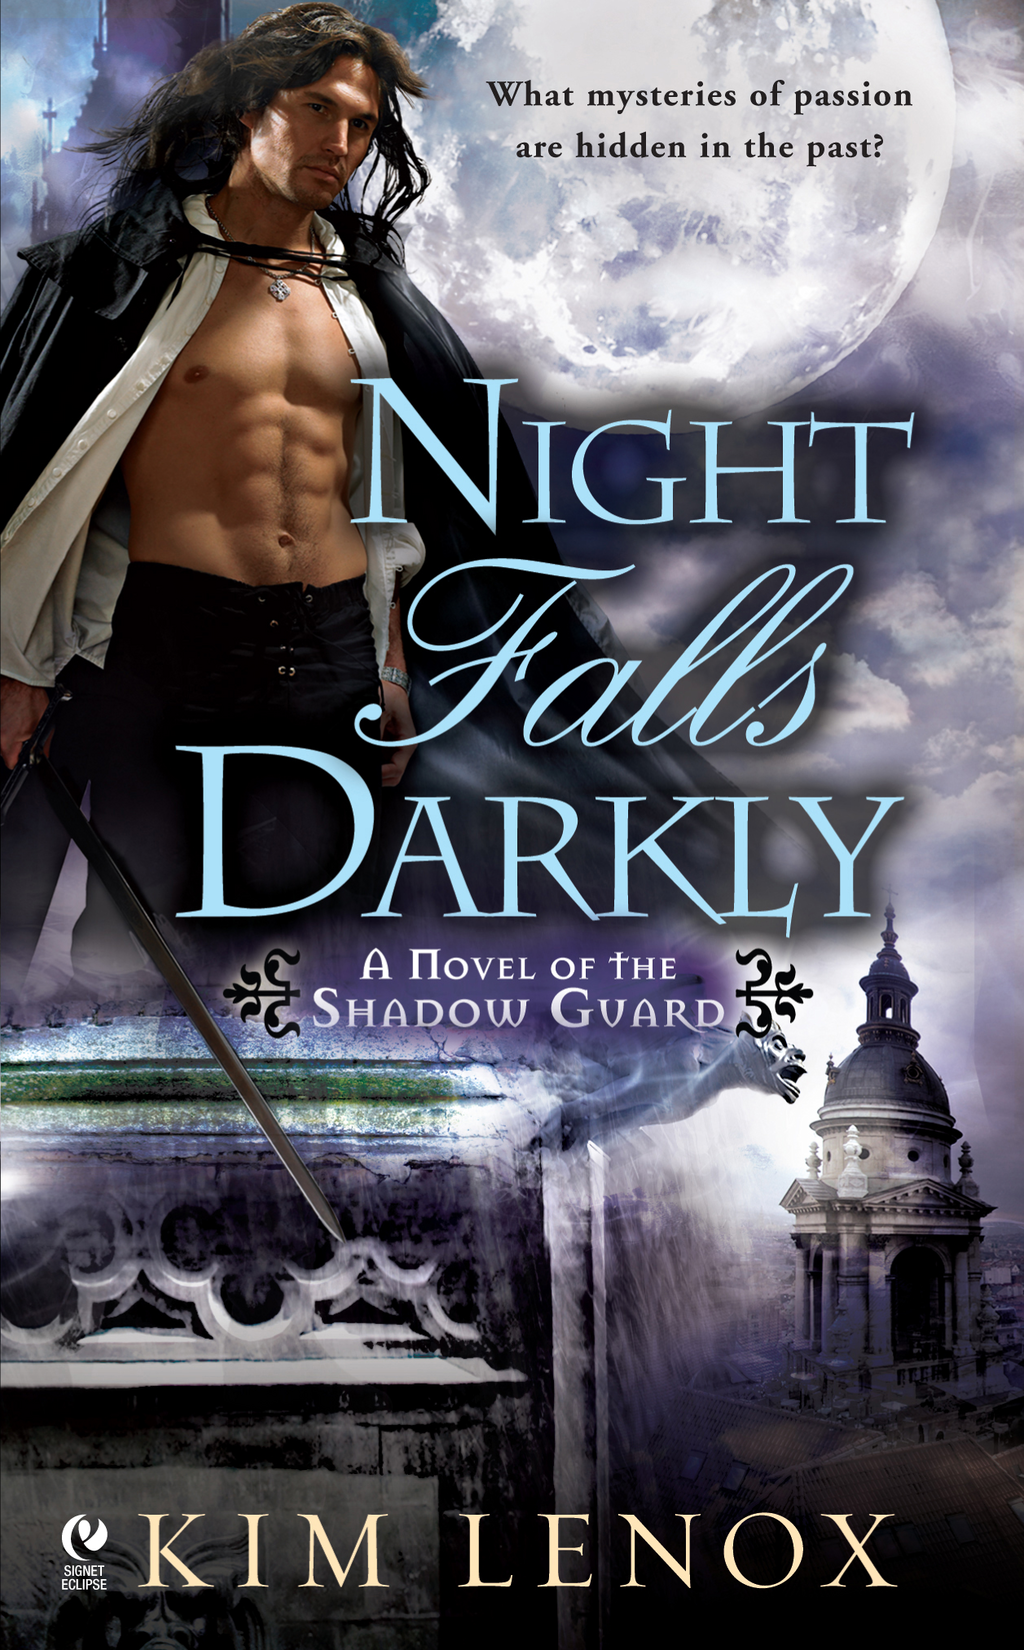 Night Falls Darkly By: Kim Lenox